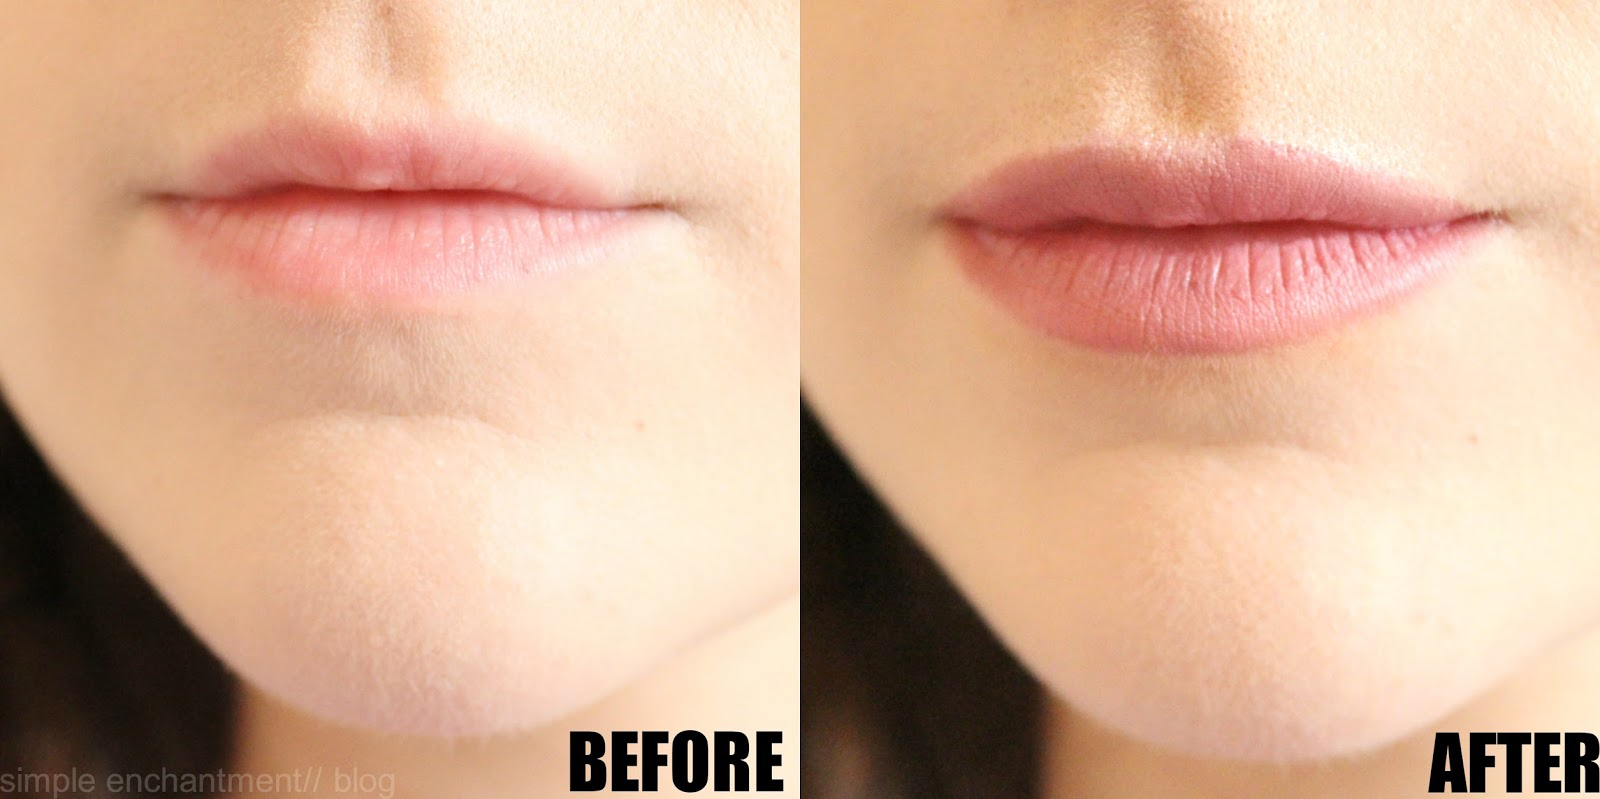 Simple Enchantment: How To Make Your Lips Look Bigger